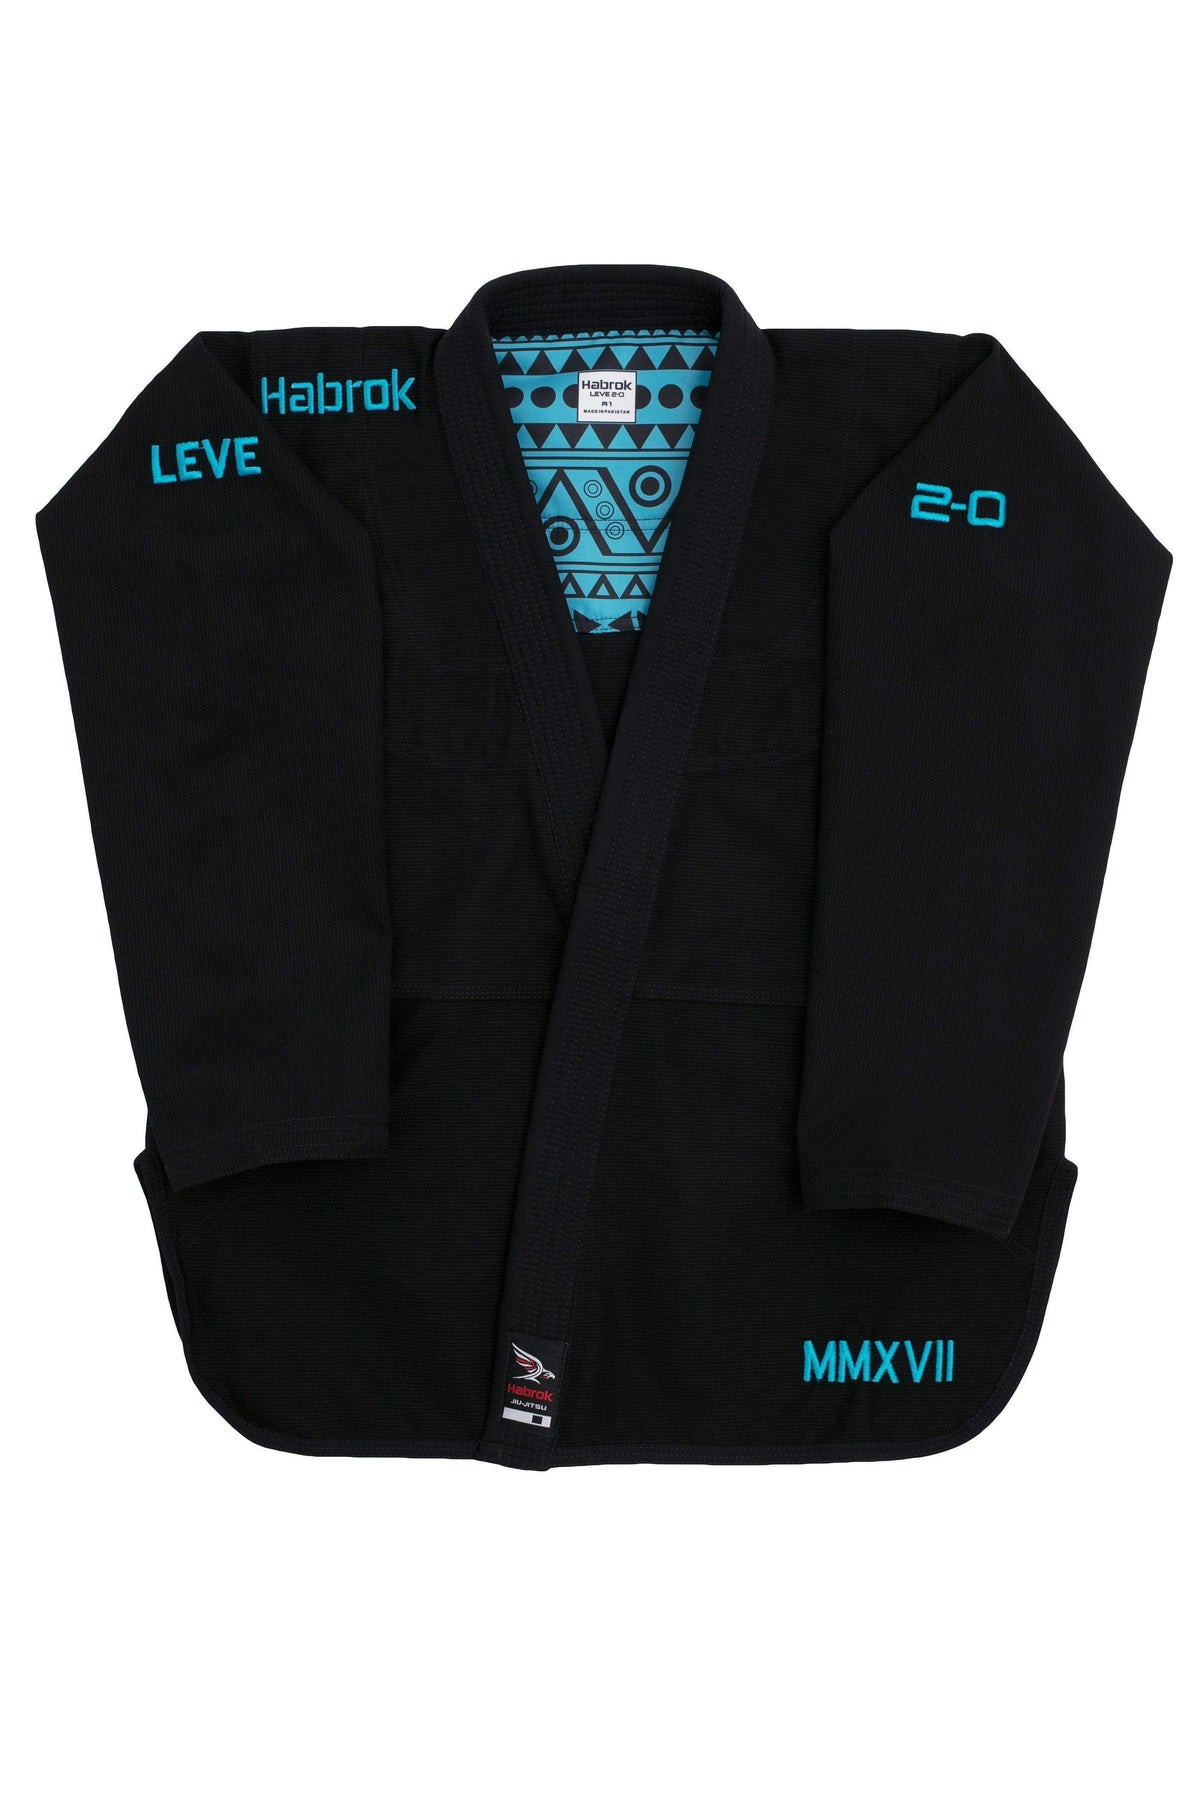 Habrok Jiu Jitsu Gi A00 / BLACK Leve 2.0 | Men | Premium Ultra Light Weight Gi 680334793337